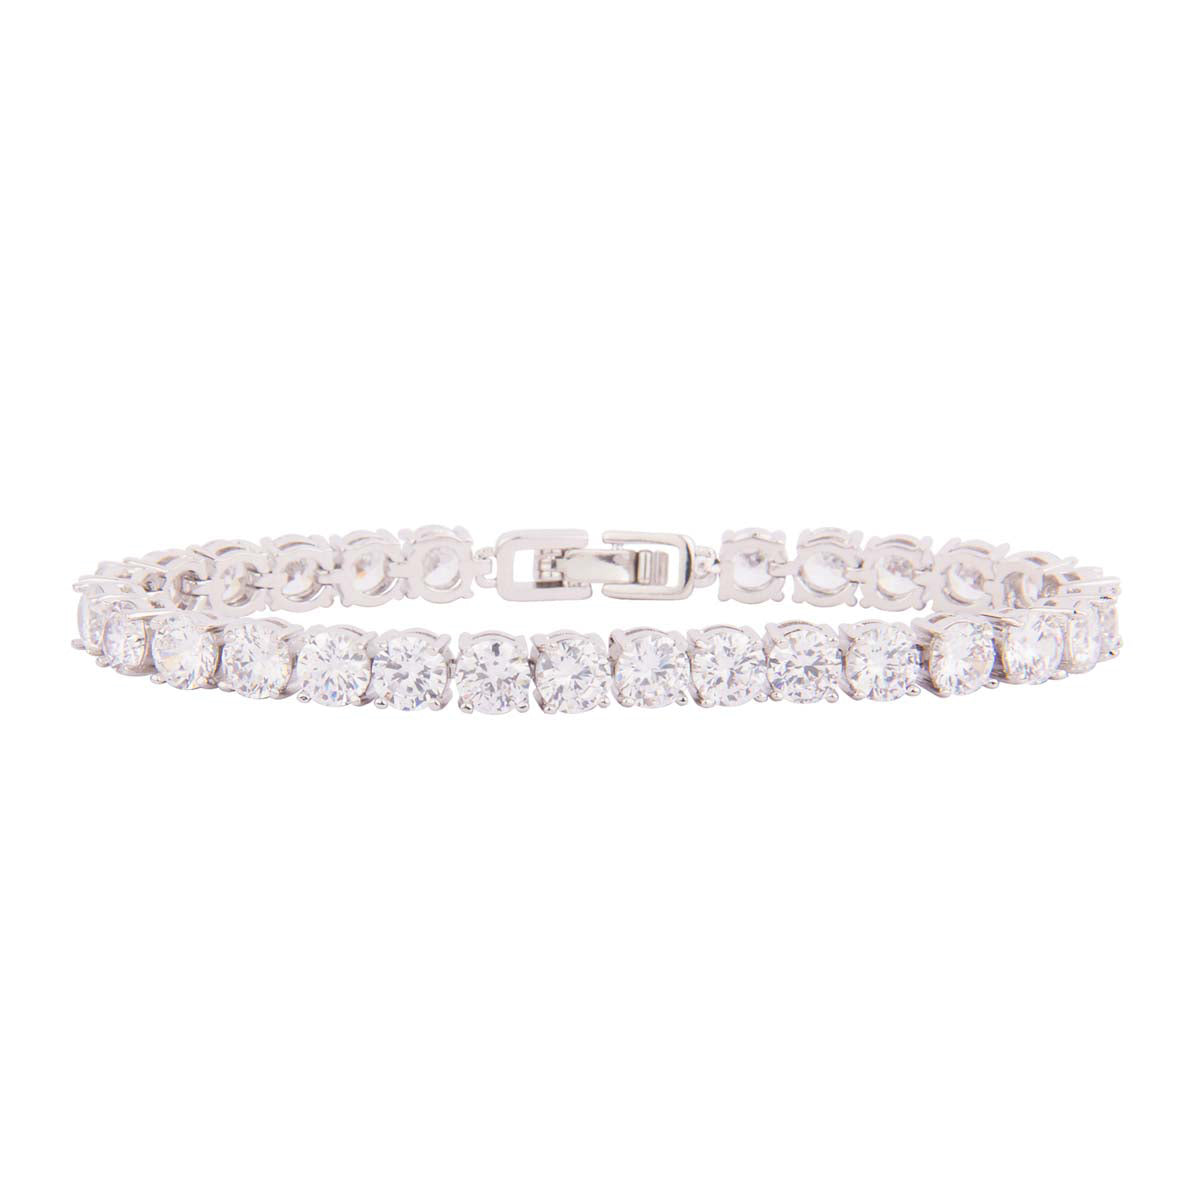 Single Lined Large Solitaire Bracelet